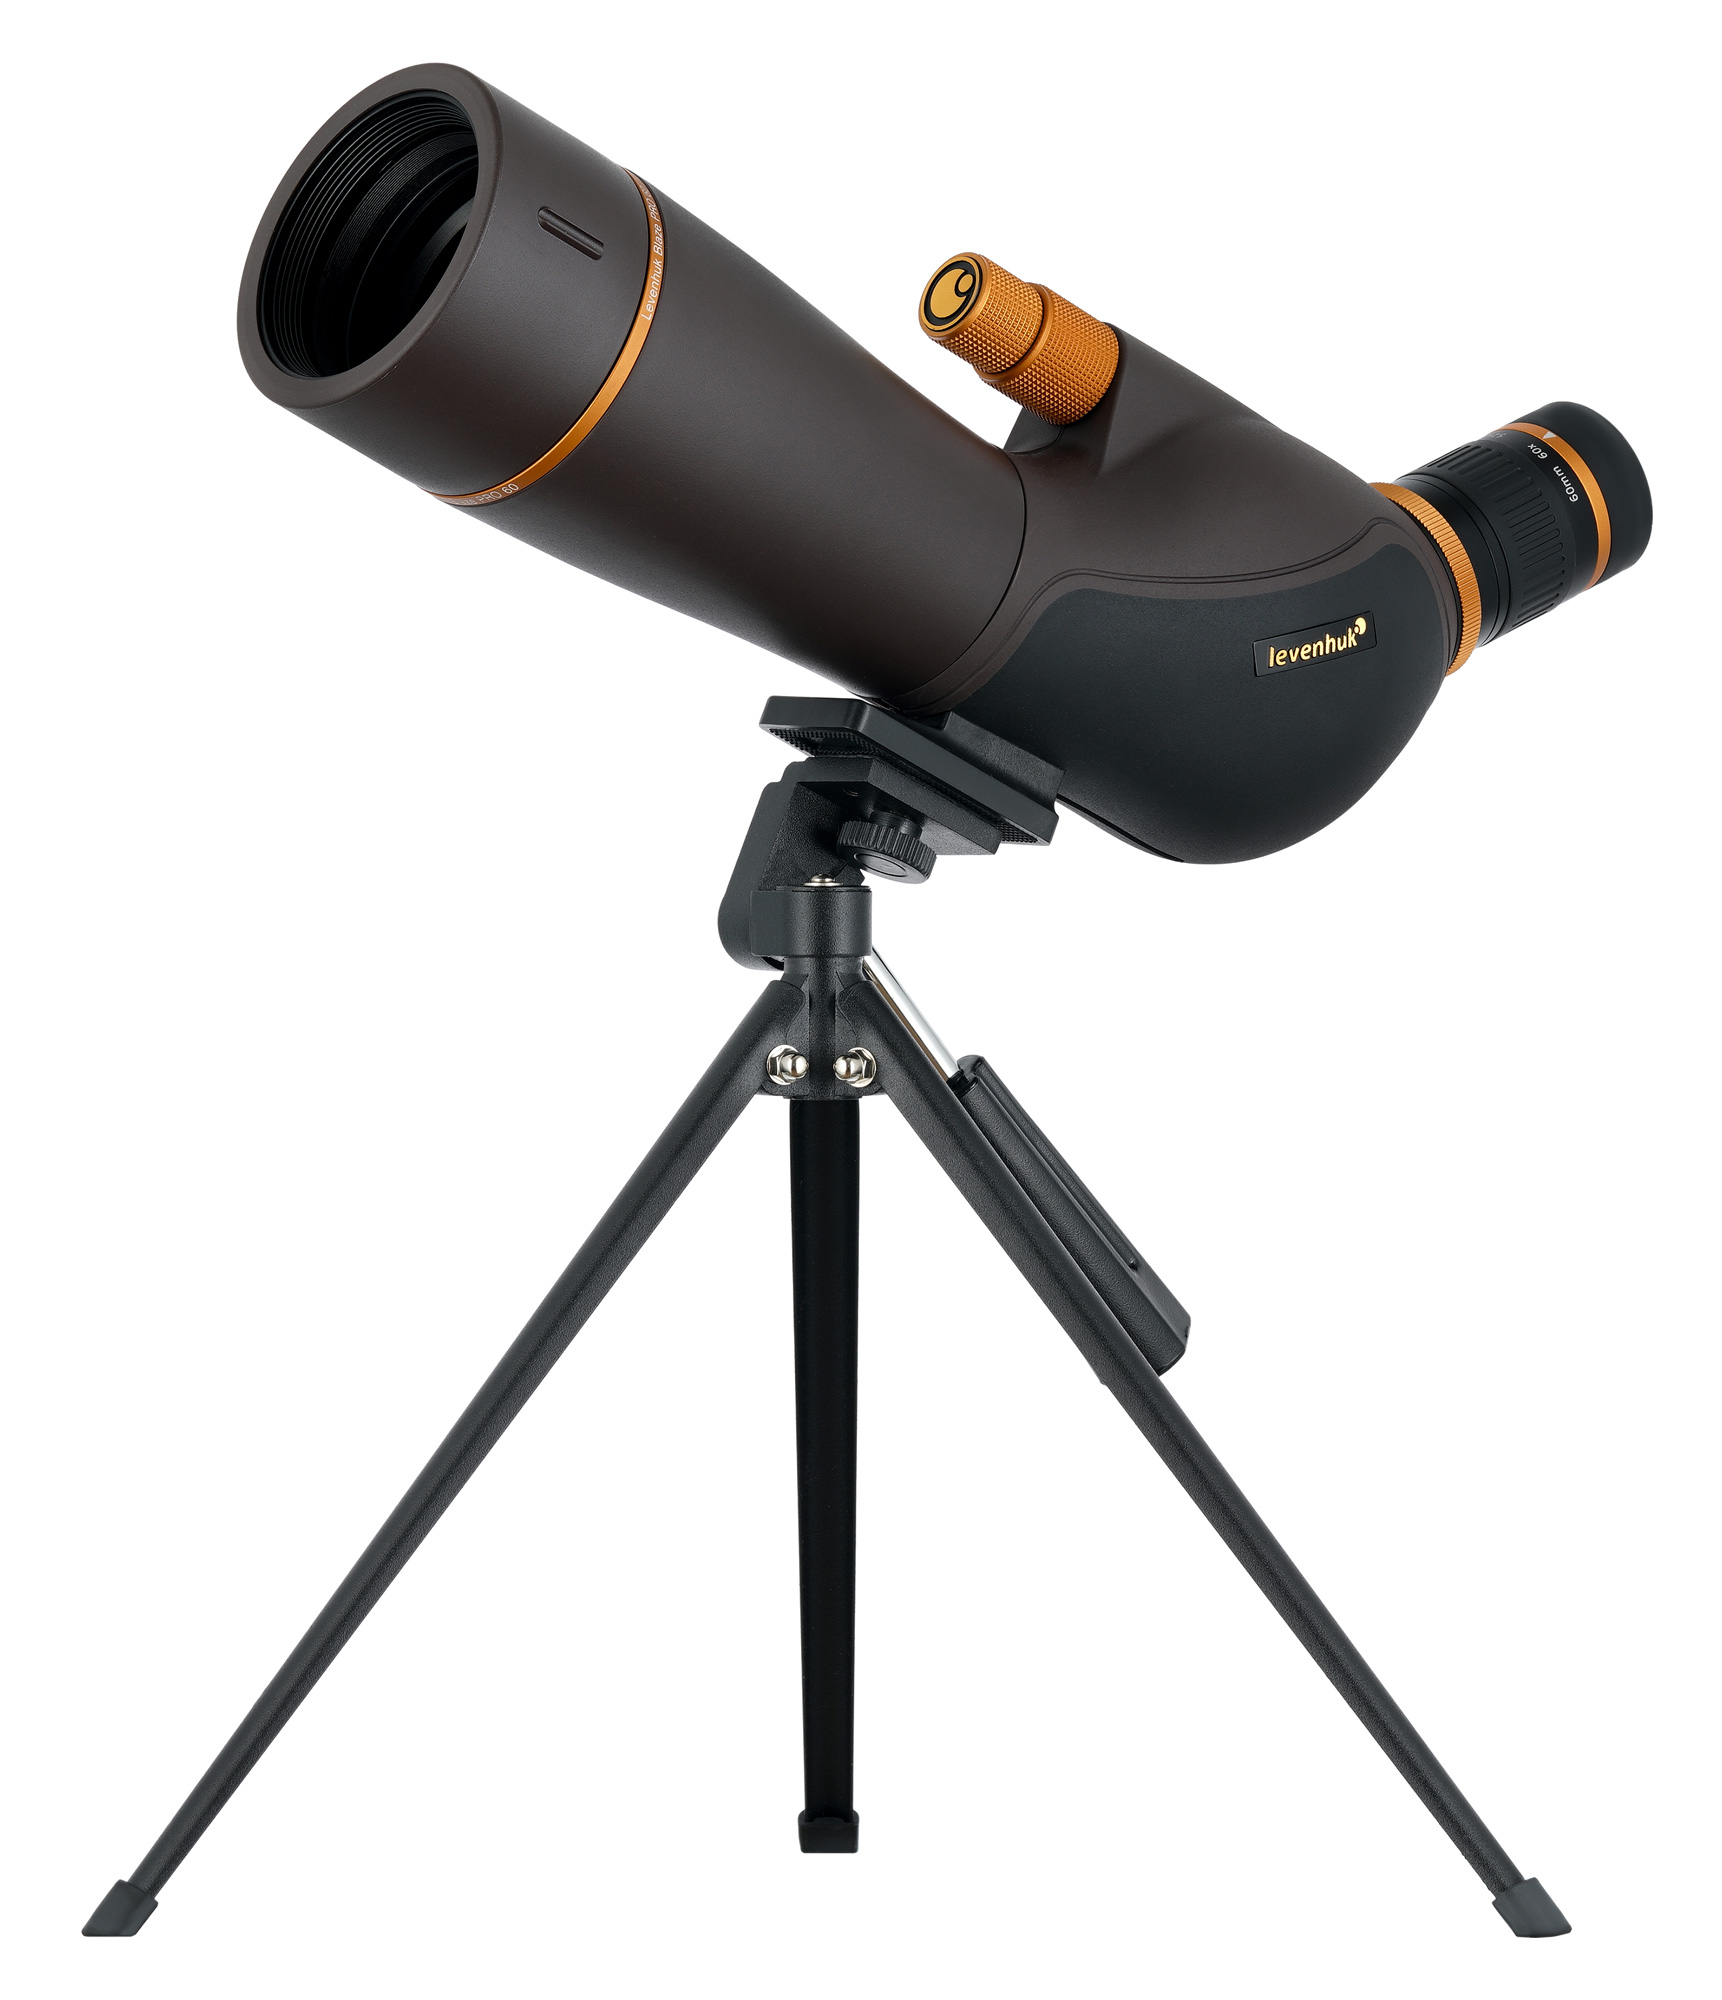 Levenhuk Blaze PRO 60 Spotting Scope image